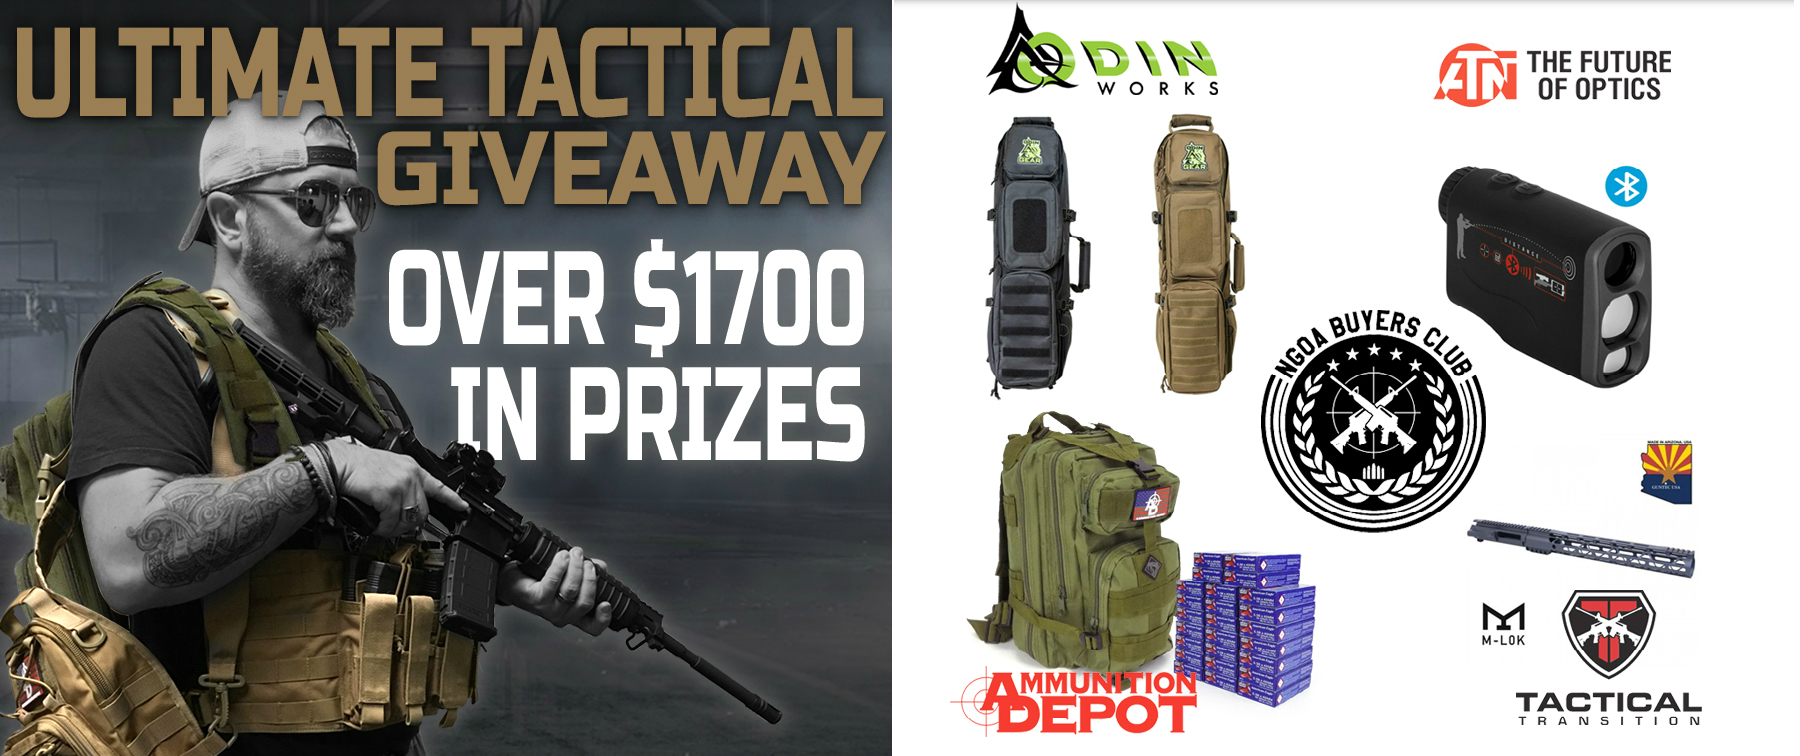 Win Over $1,700 in Prizes in the Ultimate Tactical Giveaway